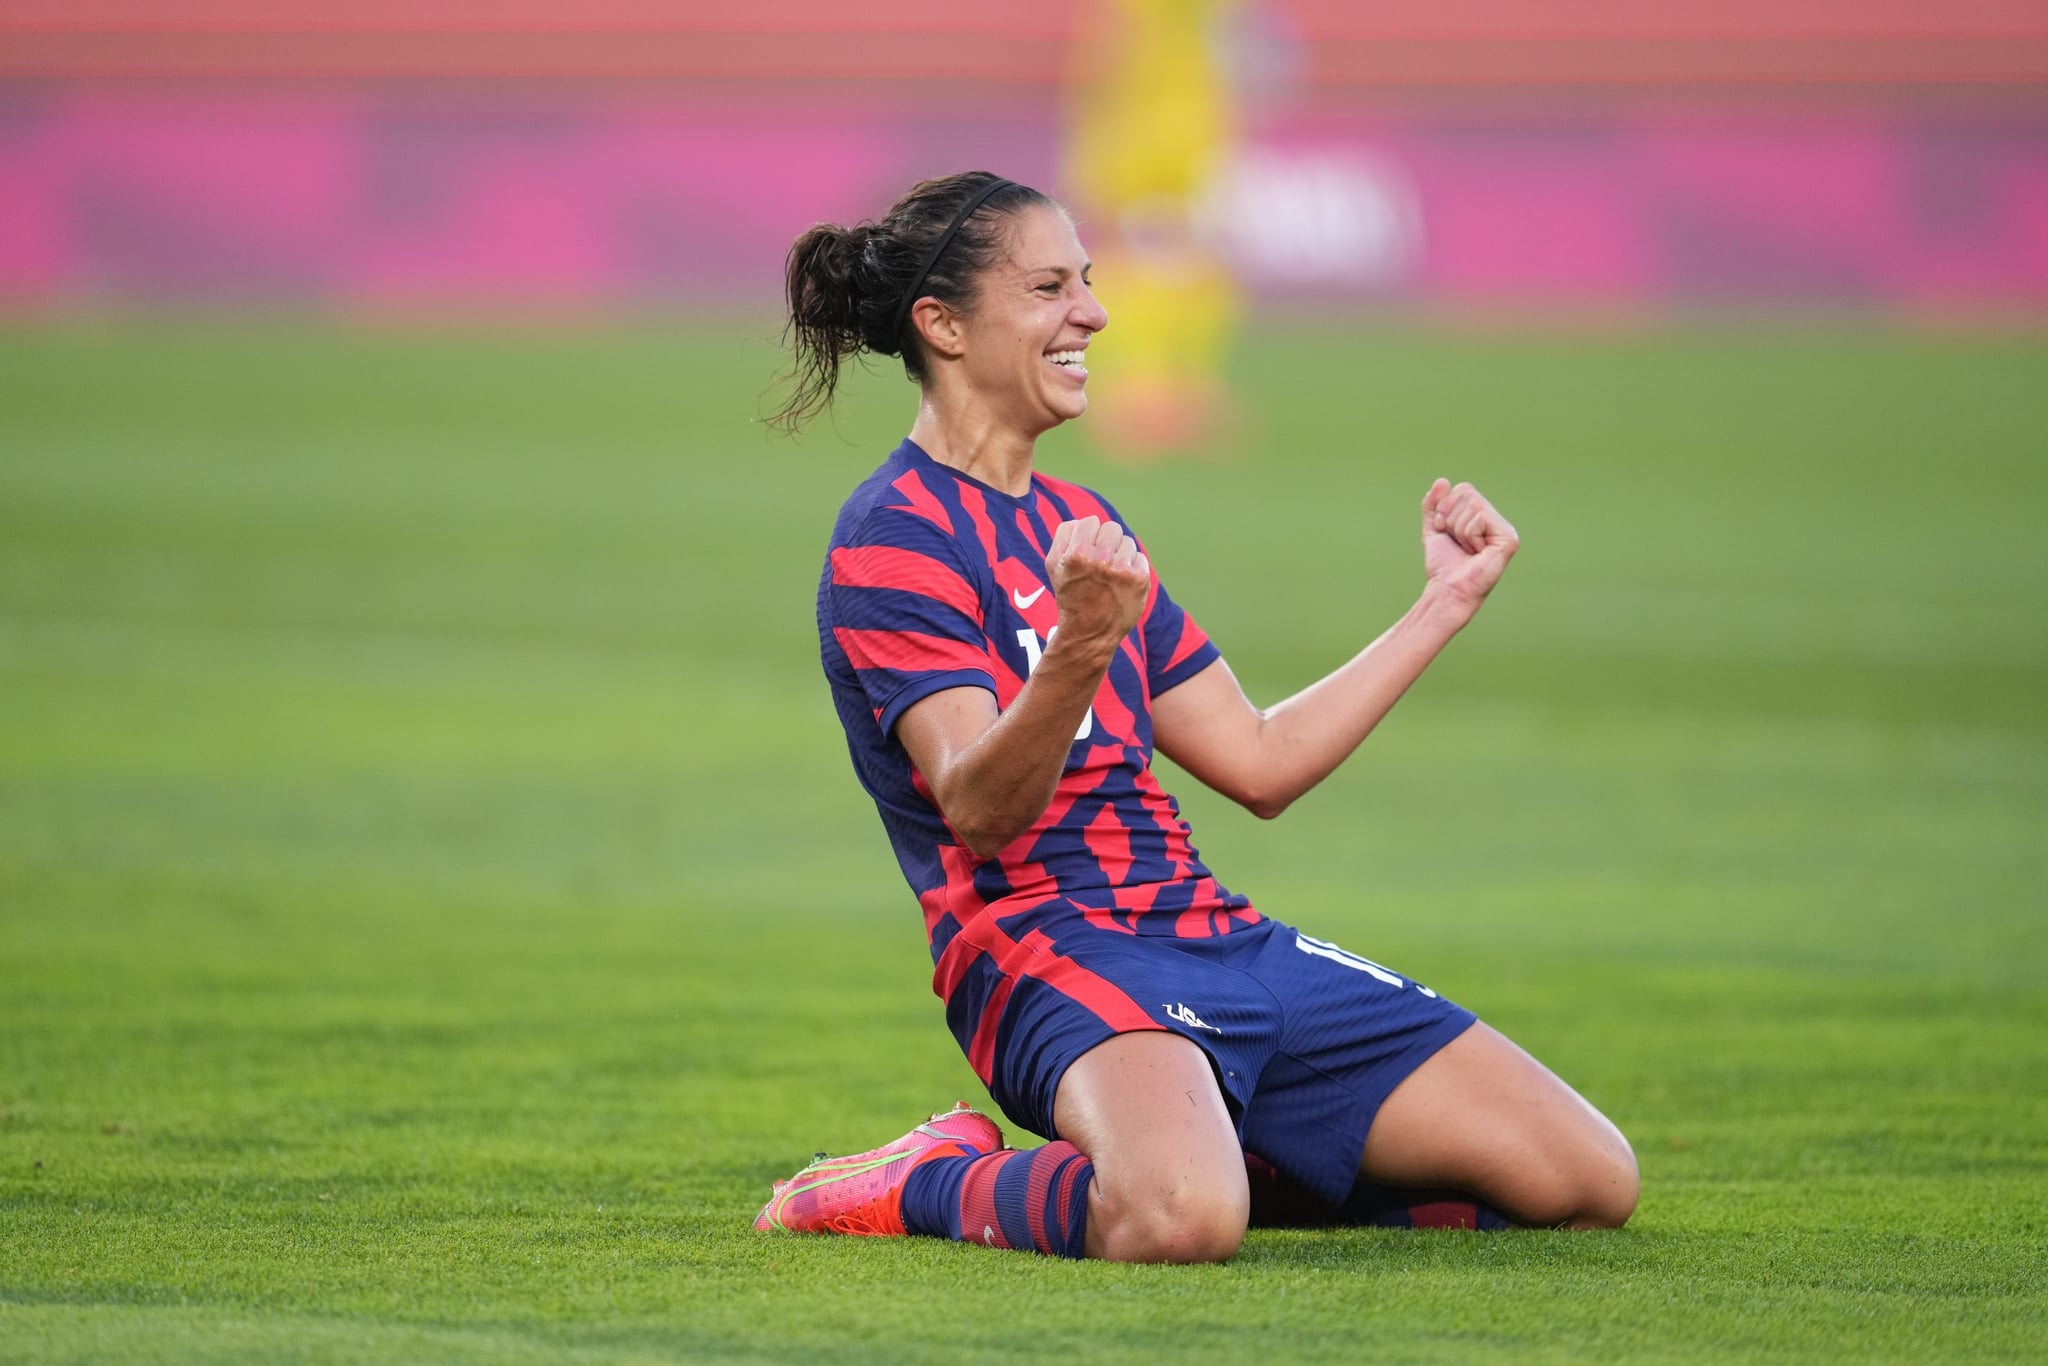 KASHIMA, JAPAN - AUGUST 5: Carli Lloyd #10 of the United States celebrates scoring during a game between Australia and USWNT at Kashima Soccer Stadium on August 5, 2021 in Kashima, Japan. (Photo by Brad Smith/ISI Photos/Getty Images)